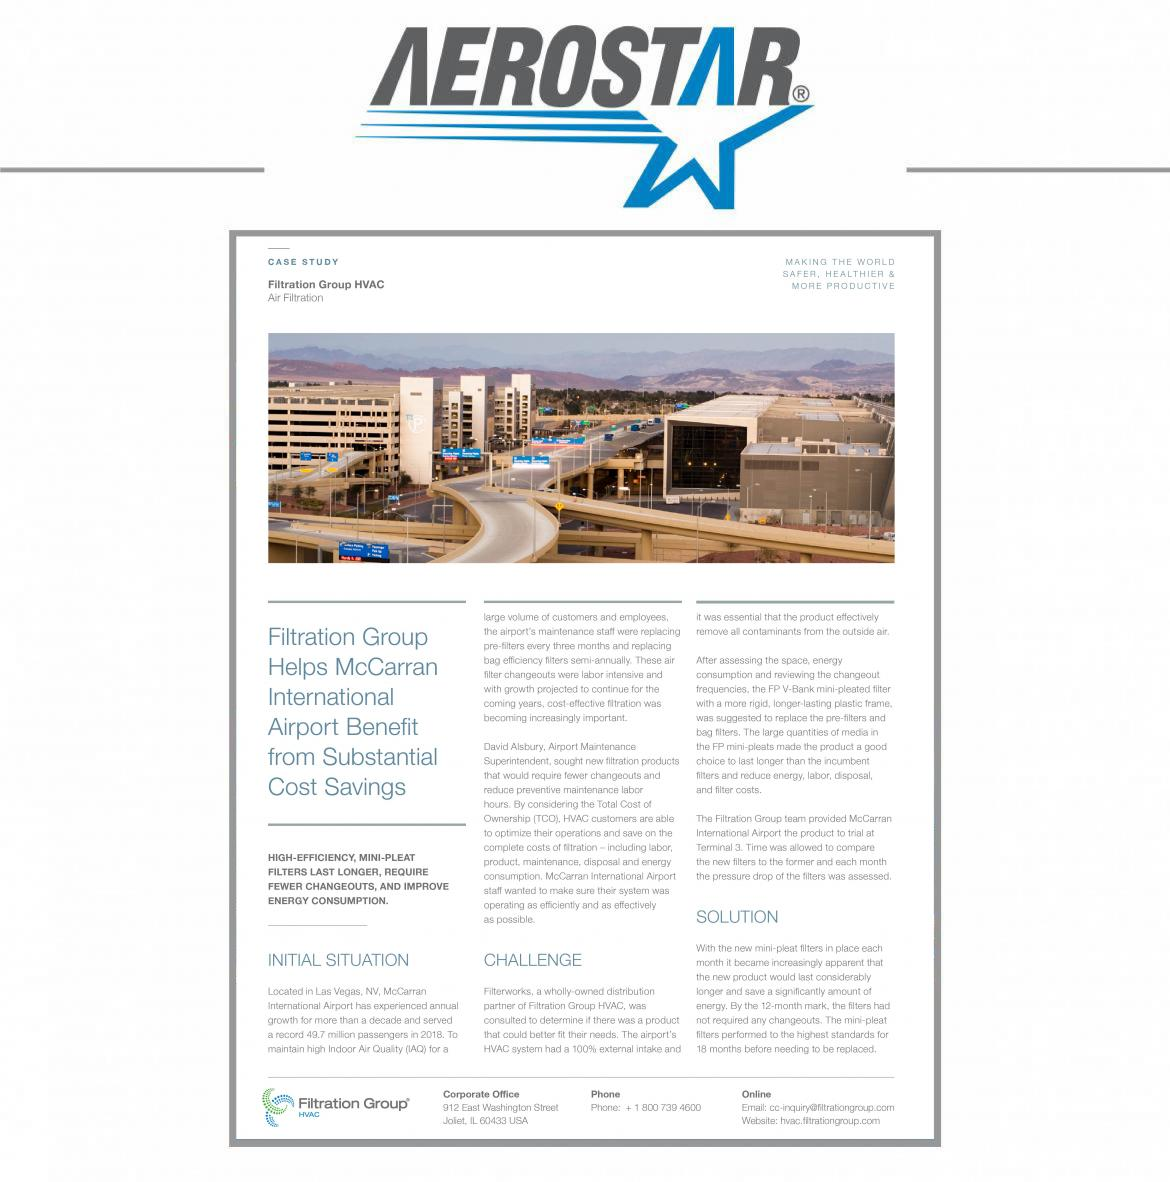 Filtration Group-HVAC McCarran and International Airport